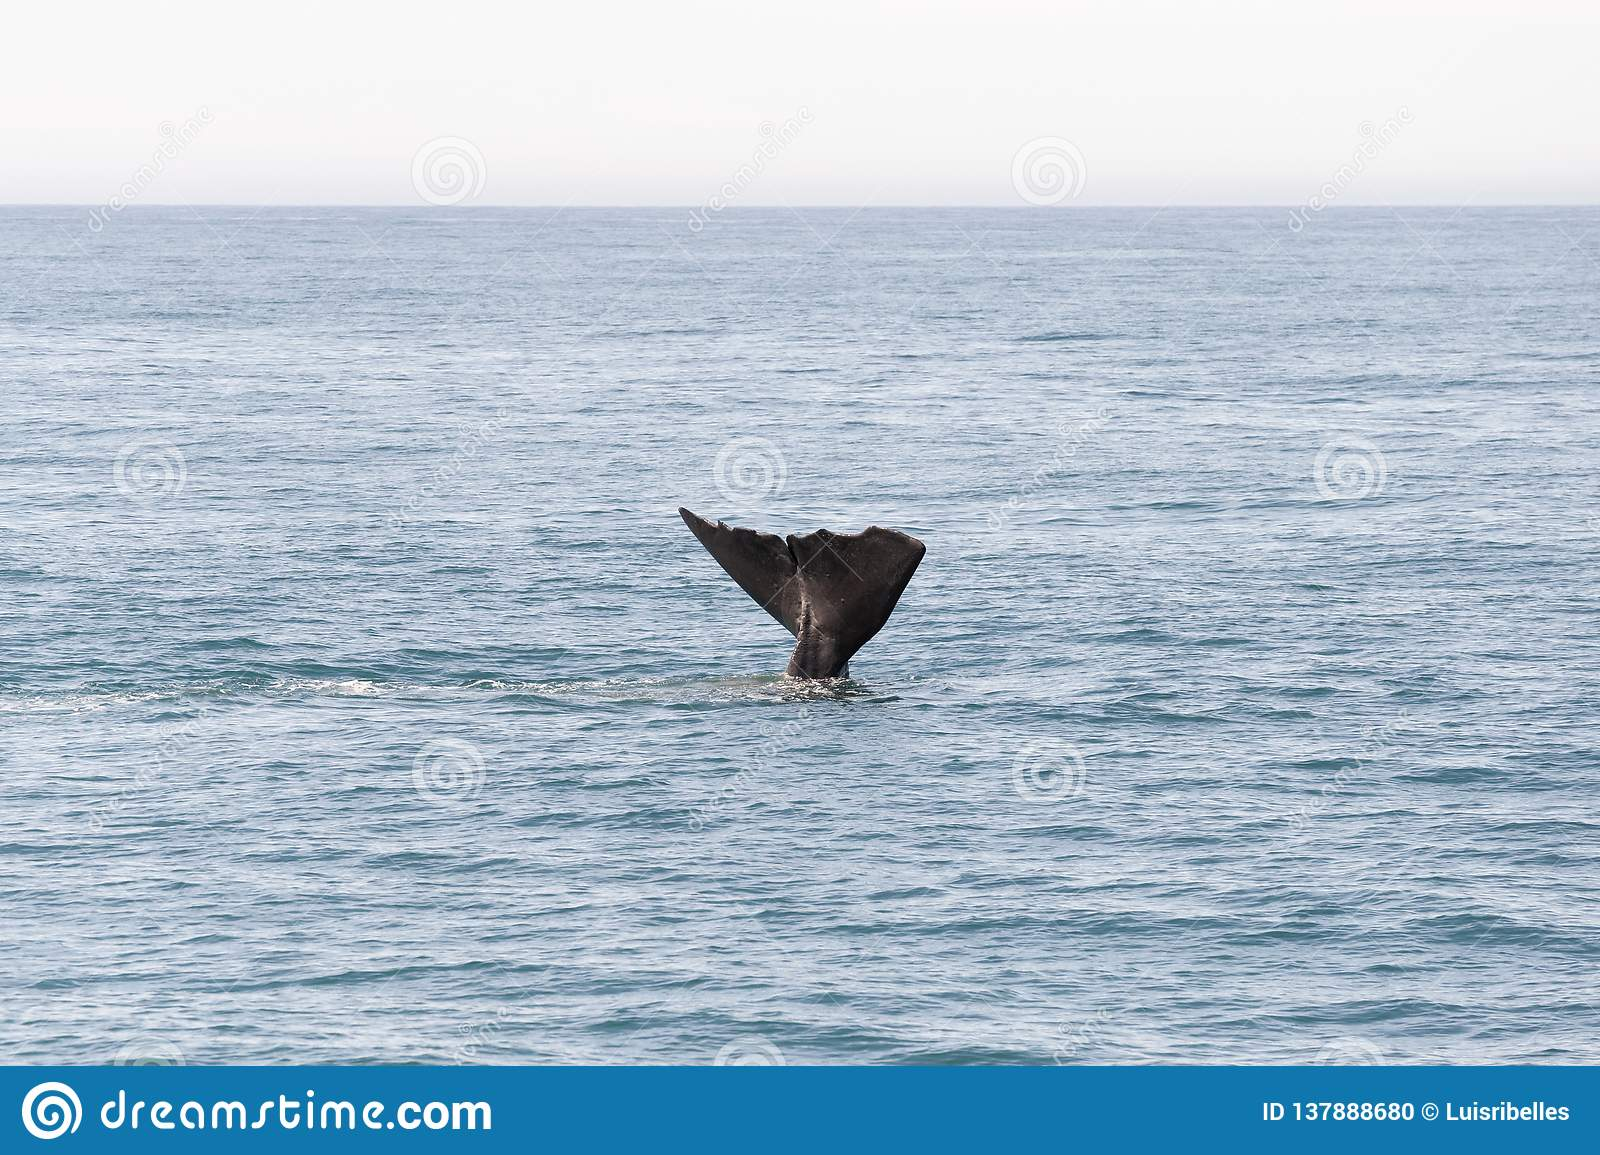 Tail from whale going into the ocean in Kaikoura, New Zealand.